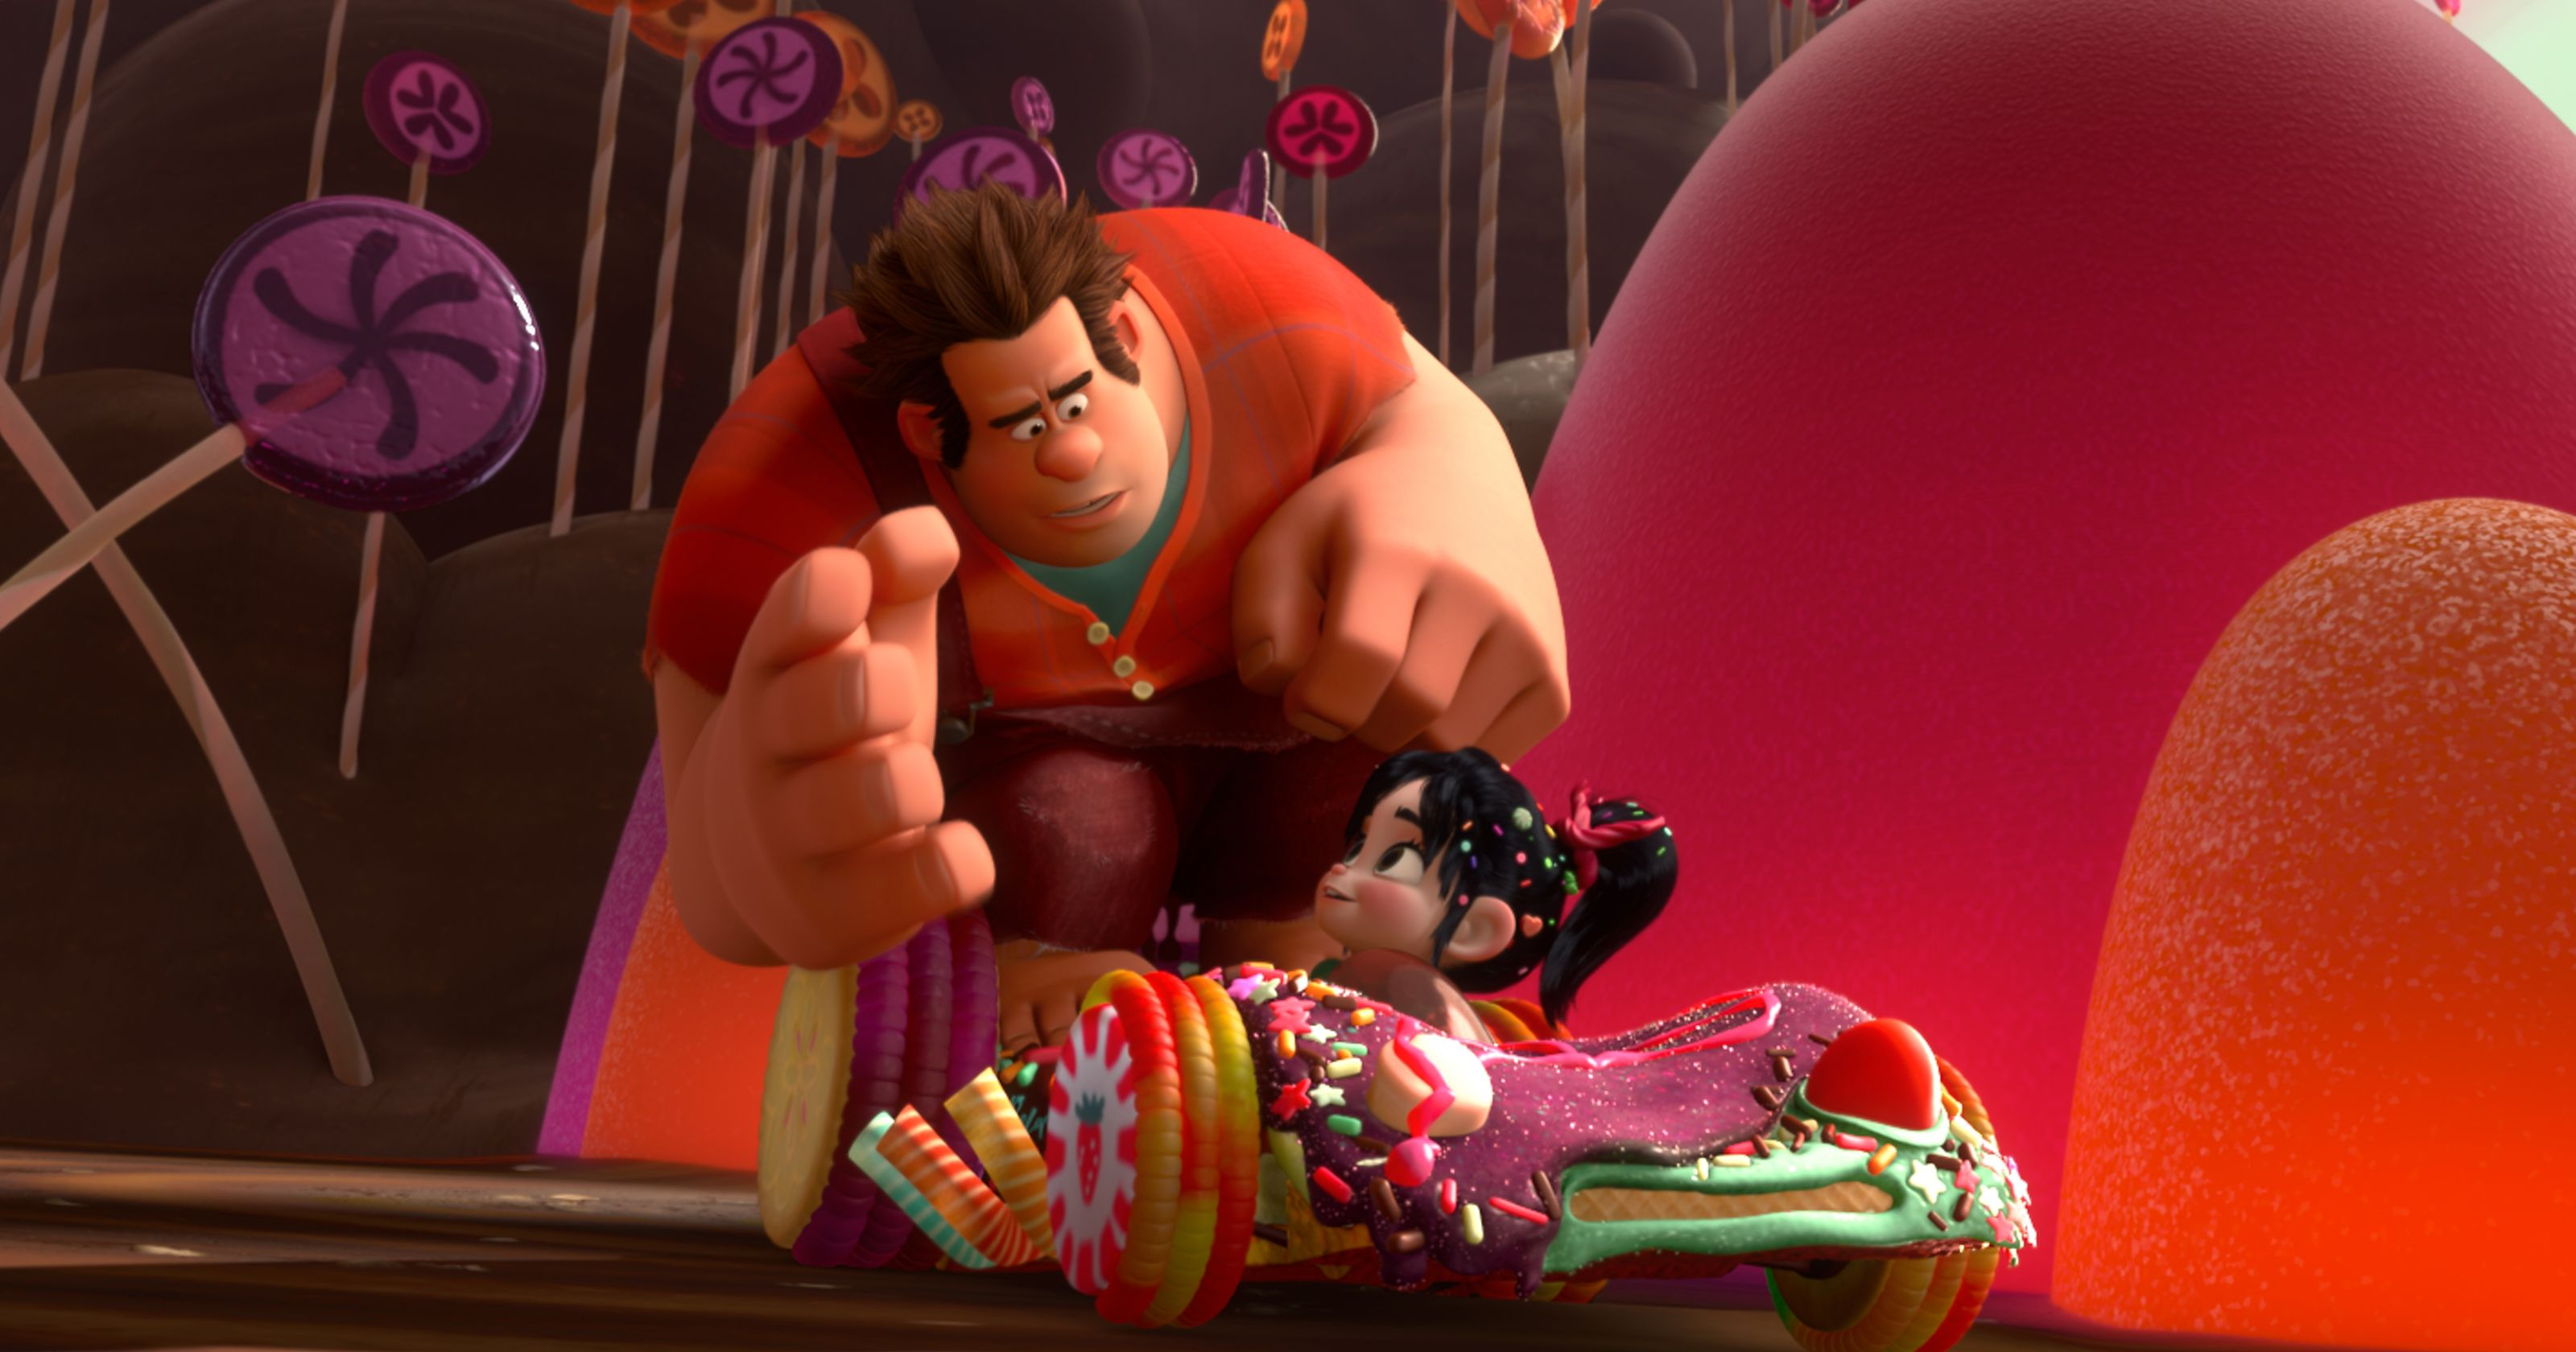 Wreck-It Ralph (voiced by John C. Reilly) and Vanellope von Schweetz (voiced by Sarah Silverman) in her candy racing car in Wreck-It Ralph (2012)